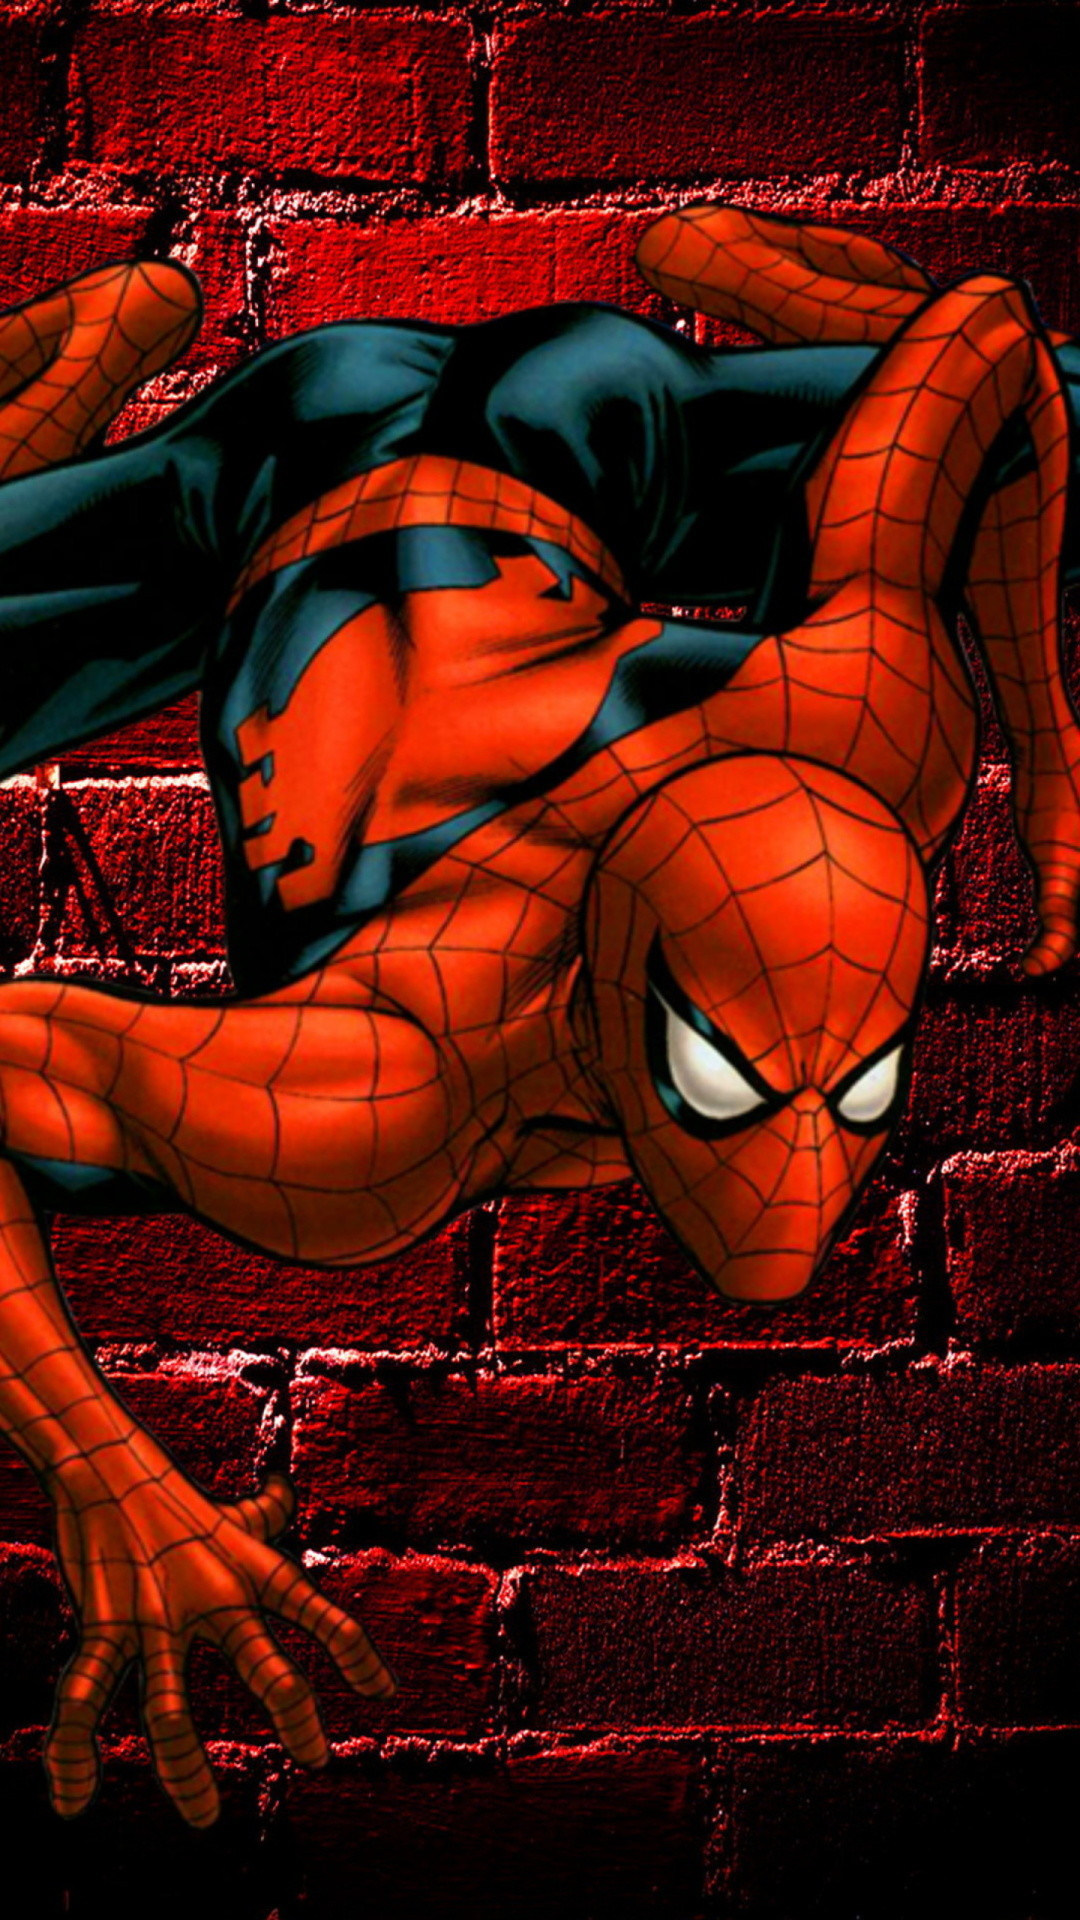 Spiderman On The Wall – Tap to see awesome spider man wallpapers! – @mobile9